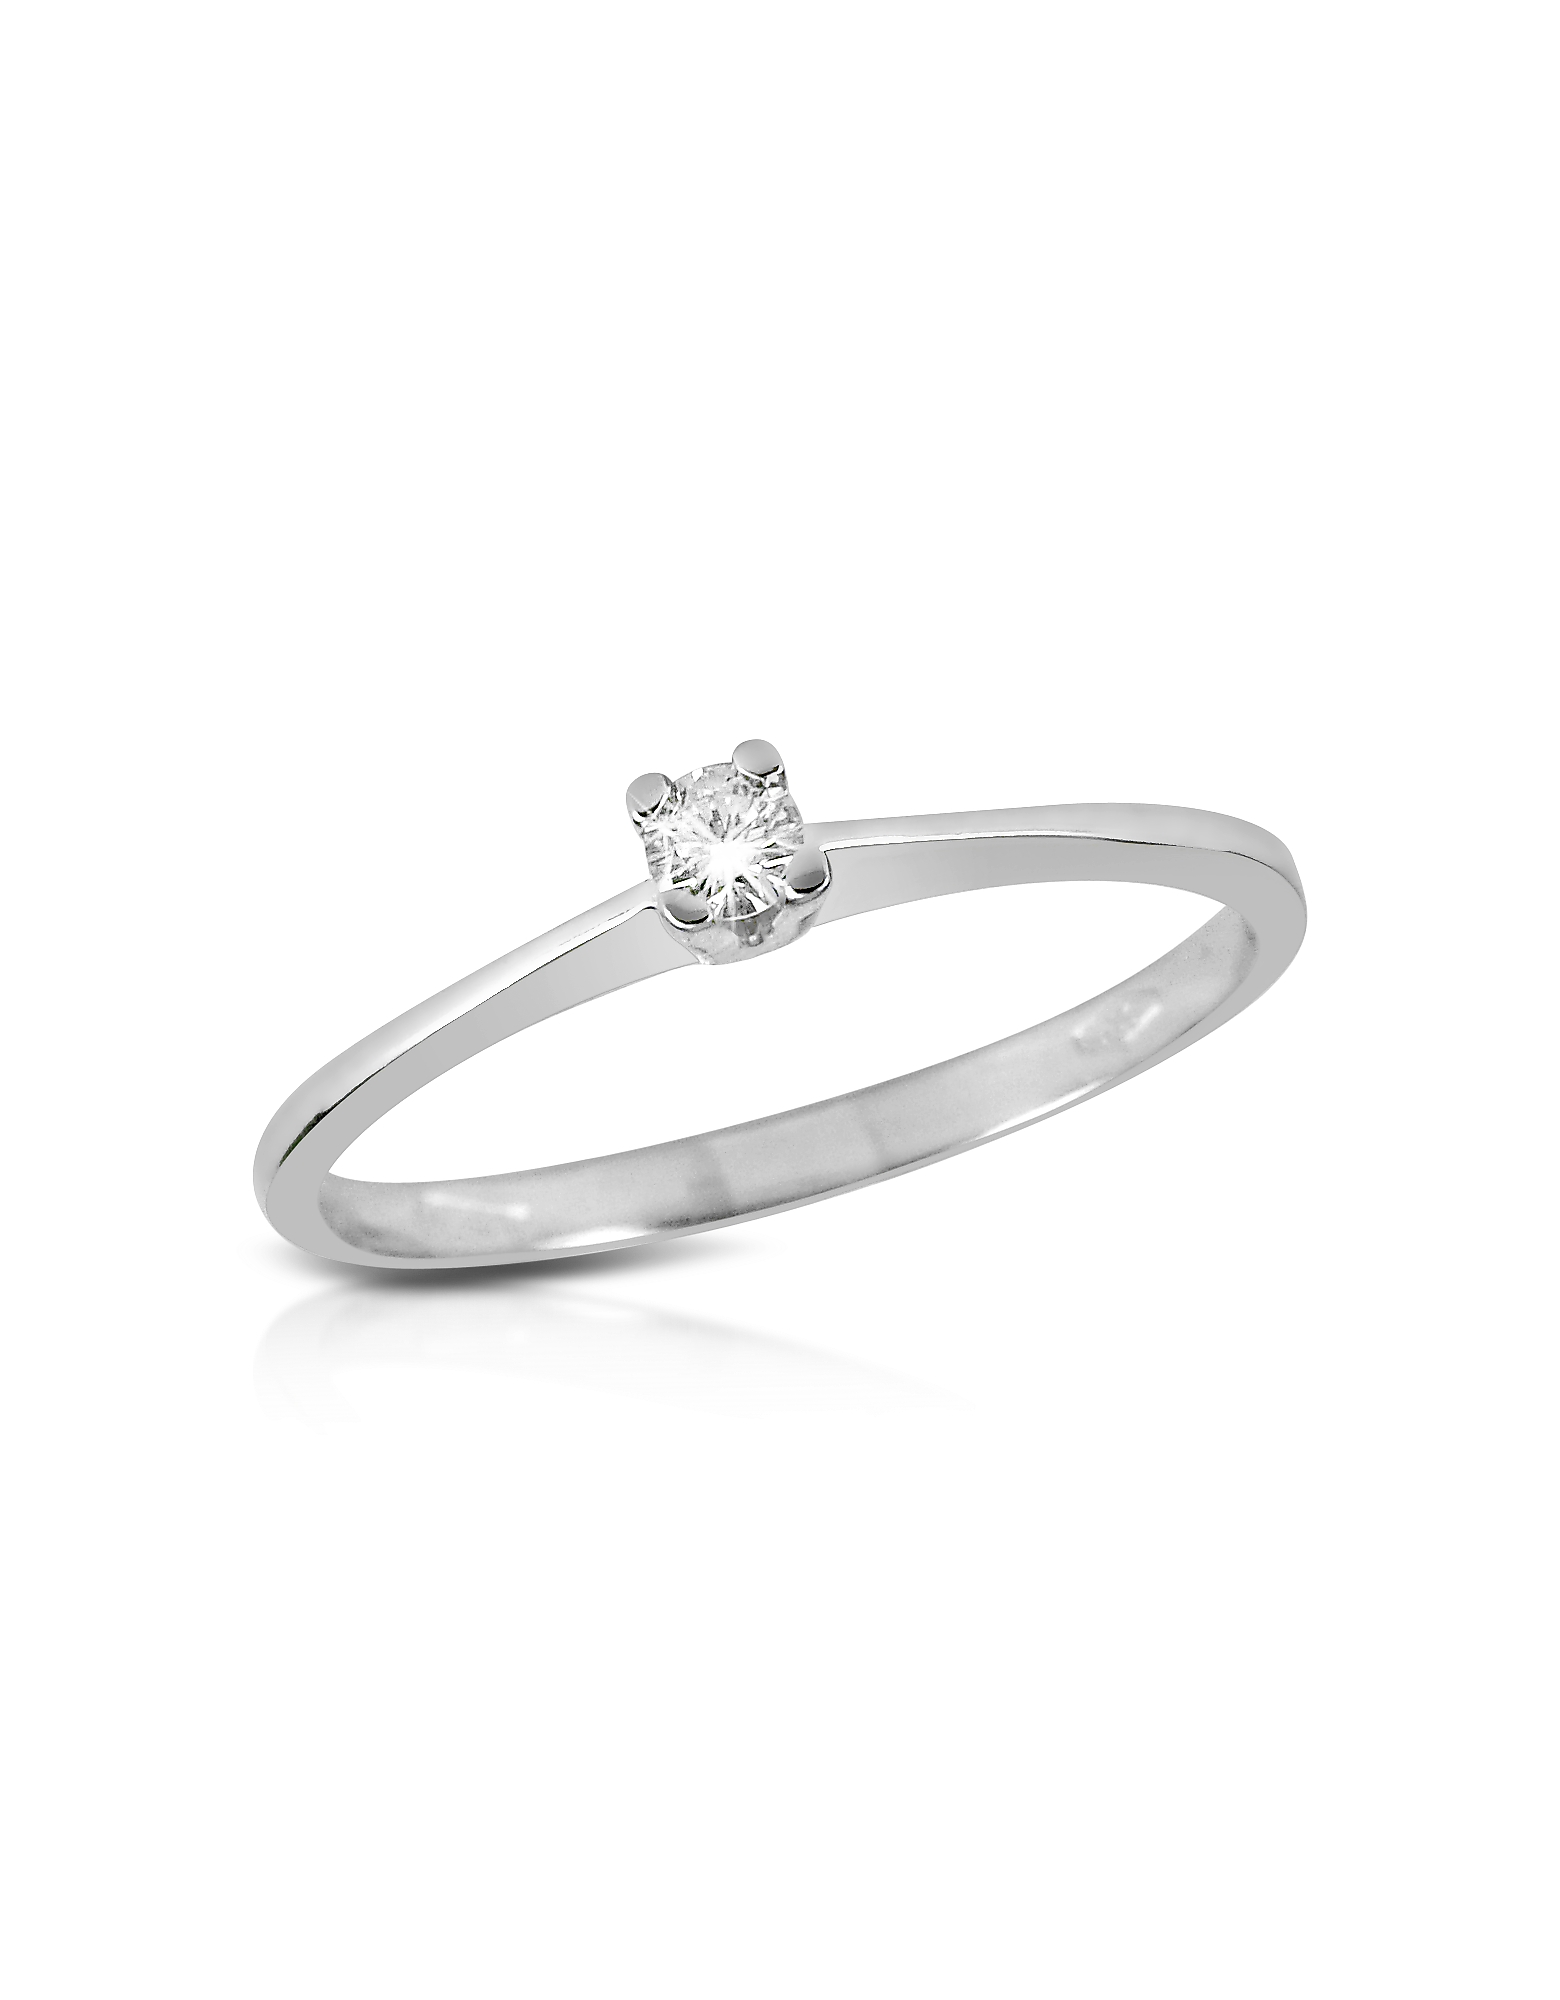 Forzieri Rings, 0.04 ct Prong-Set Diamond Solitaire Ring